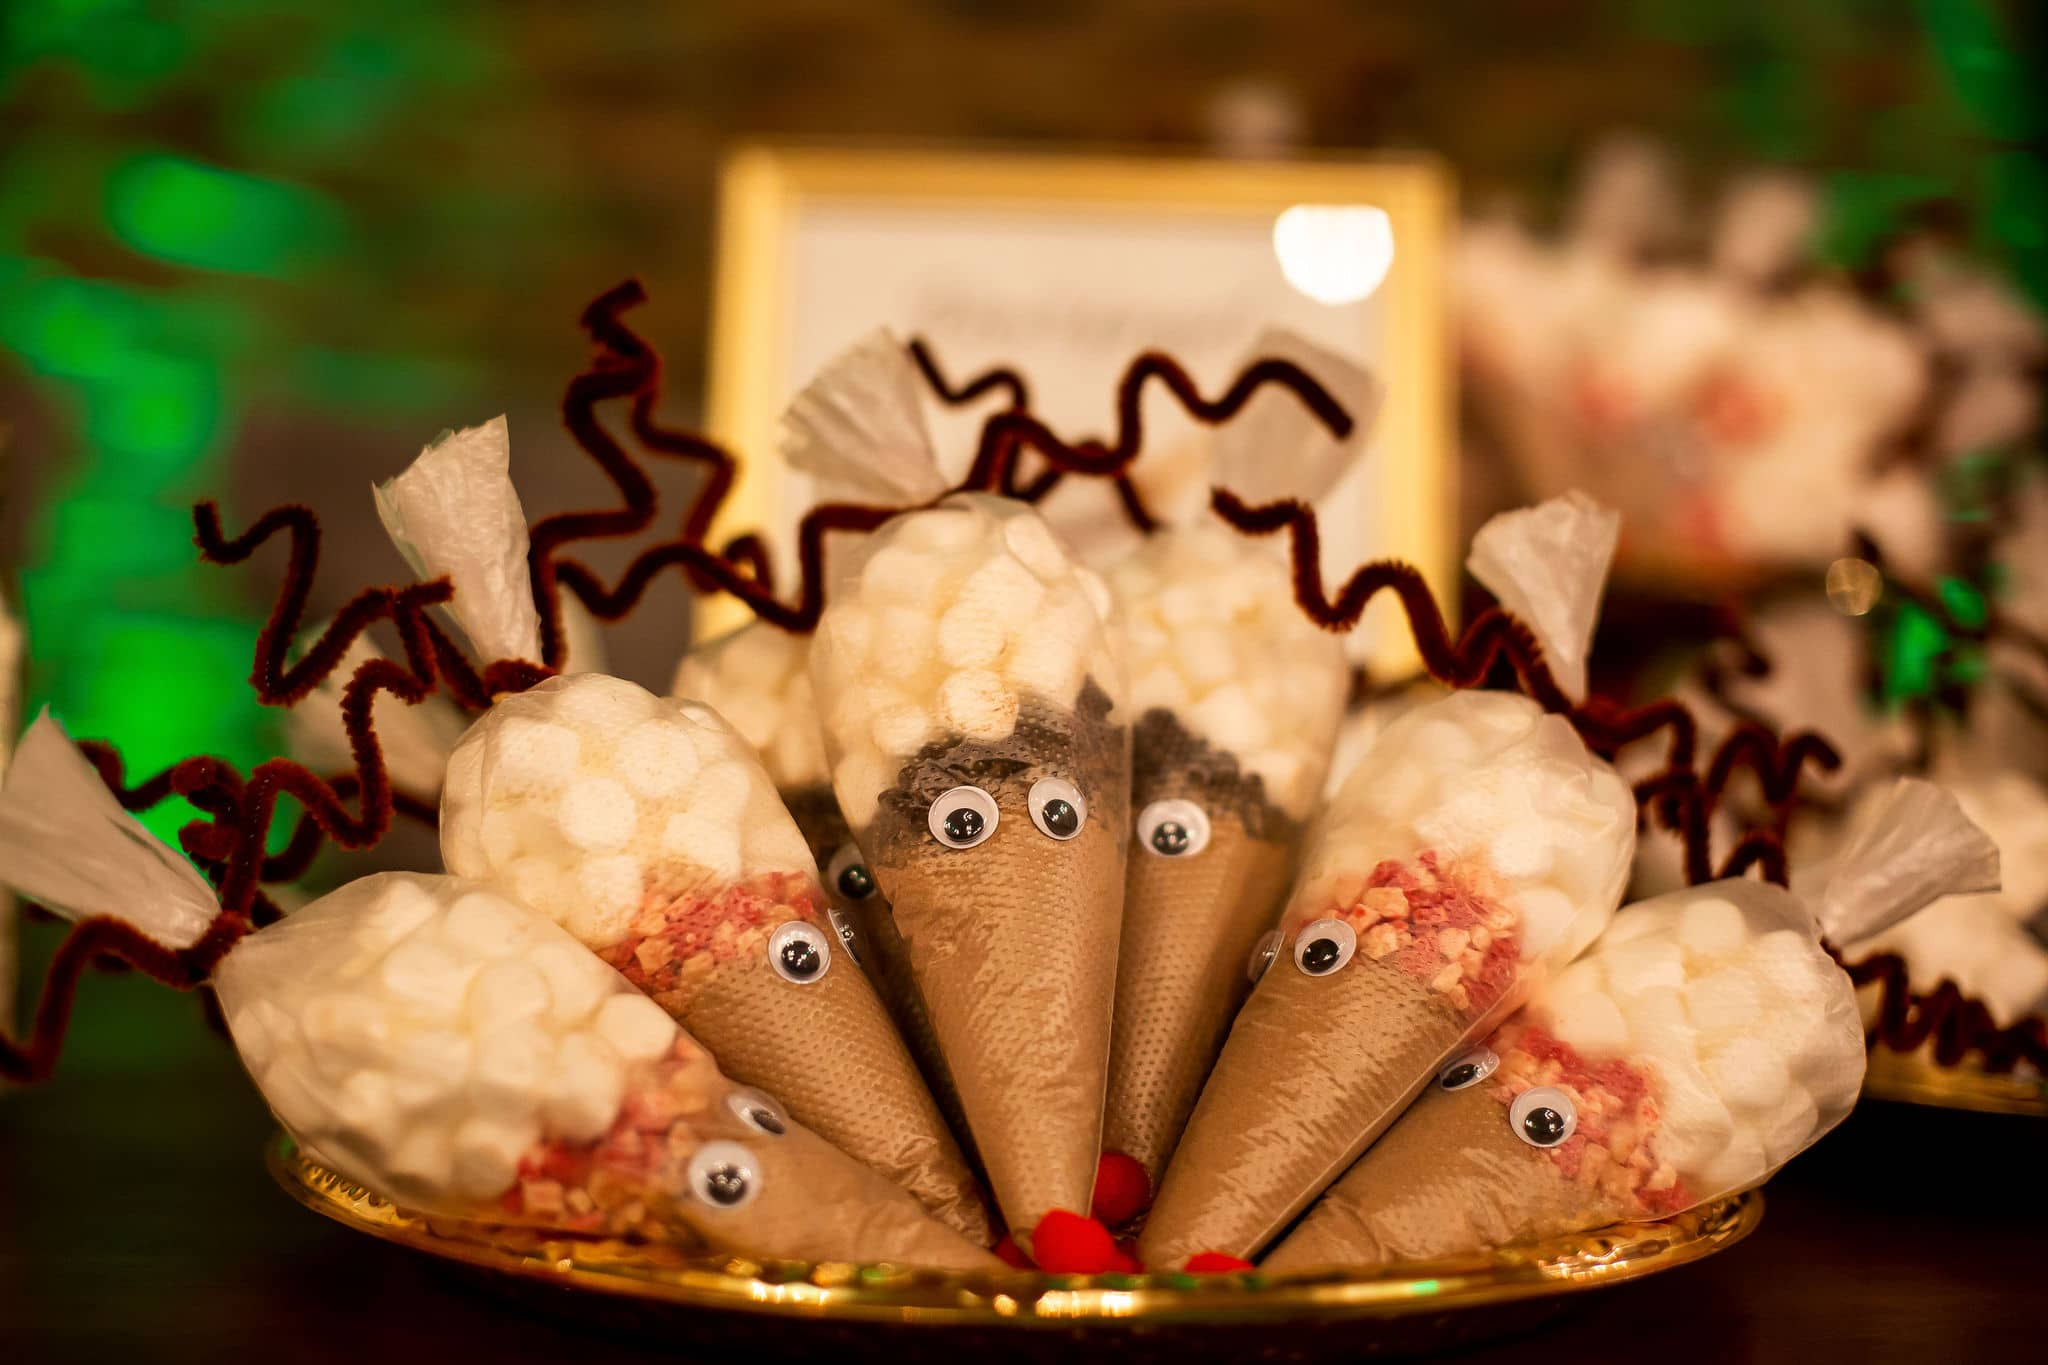 close up of decorated cones filled with hot cocoa mix and chocolate chips or candy canes with marshmallows and crafted into reindeers